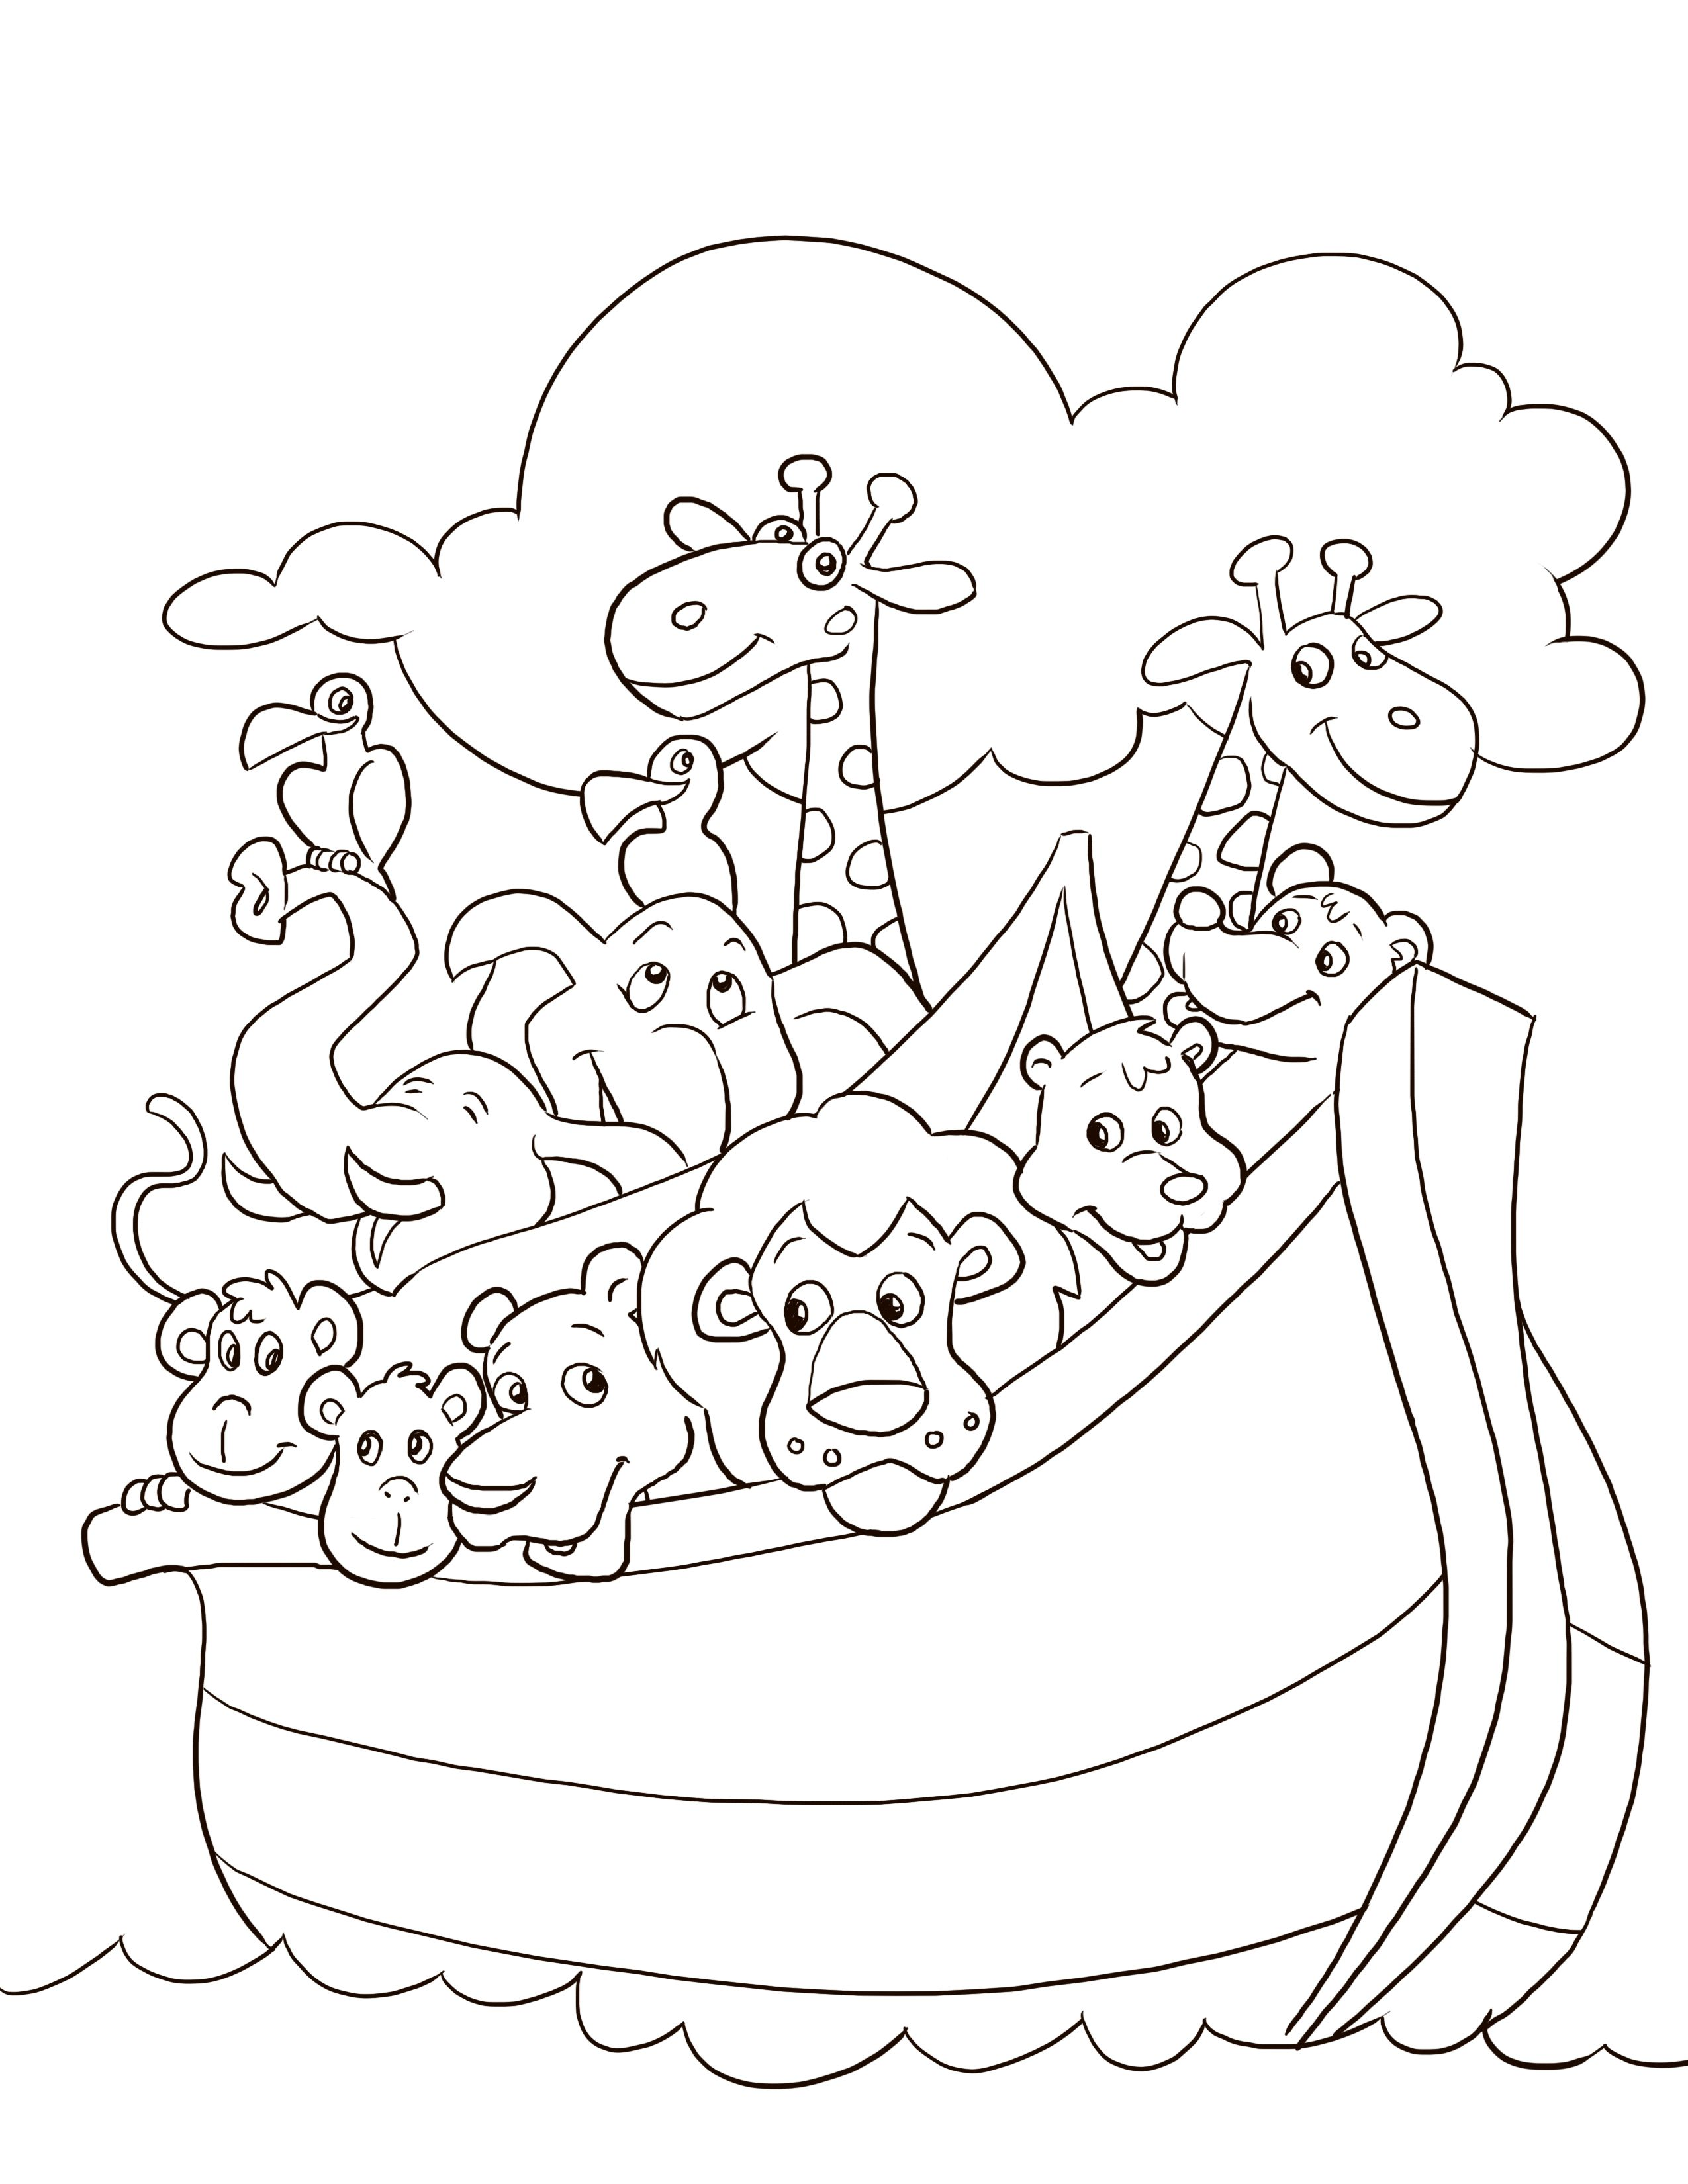 Noah Ark Coloring Pages Free Coloring Pages Download | Xsibe noah s ...